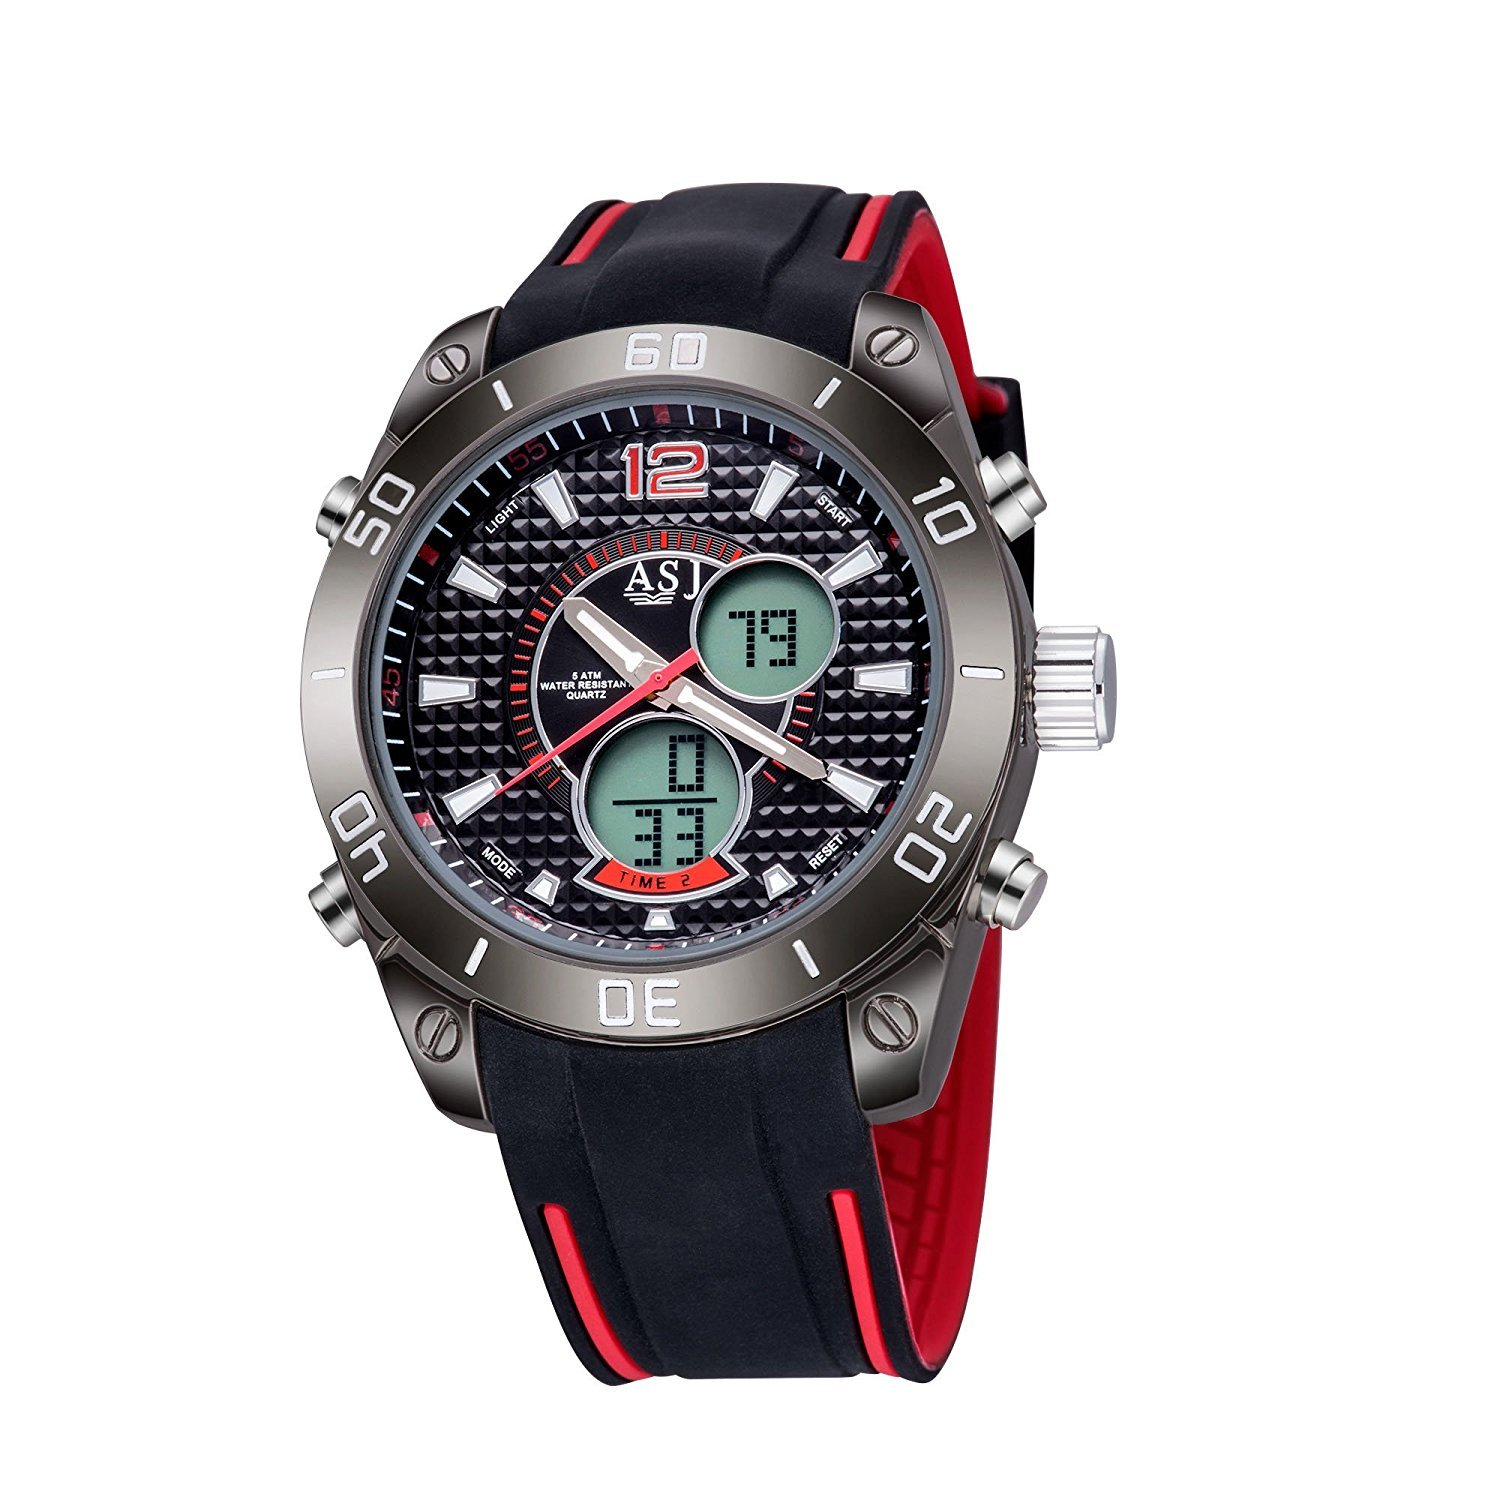 TAWURS Multi Function Digital LED Quartz Watch Electronic Waterproof Sport Watches (Red)